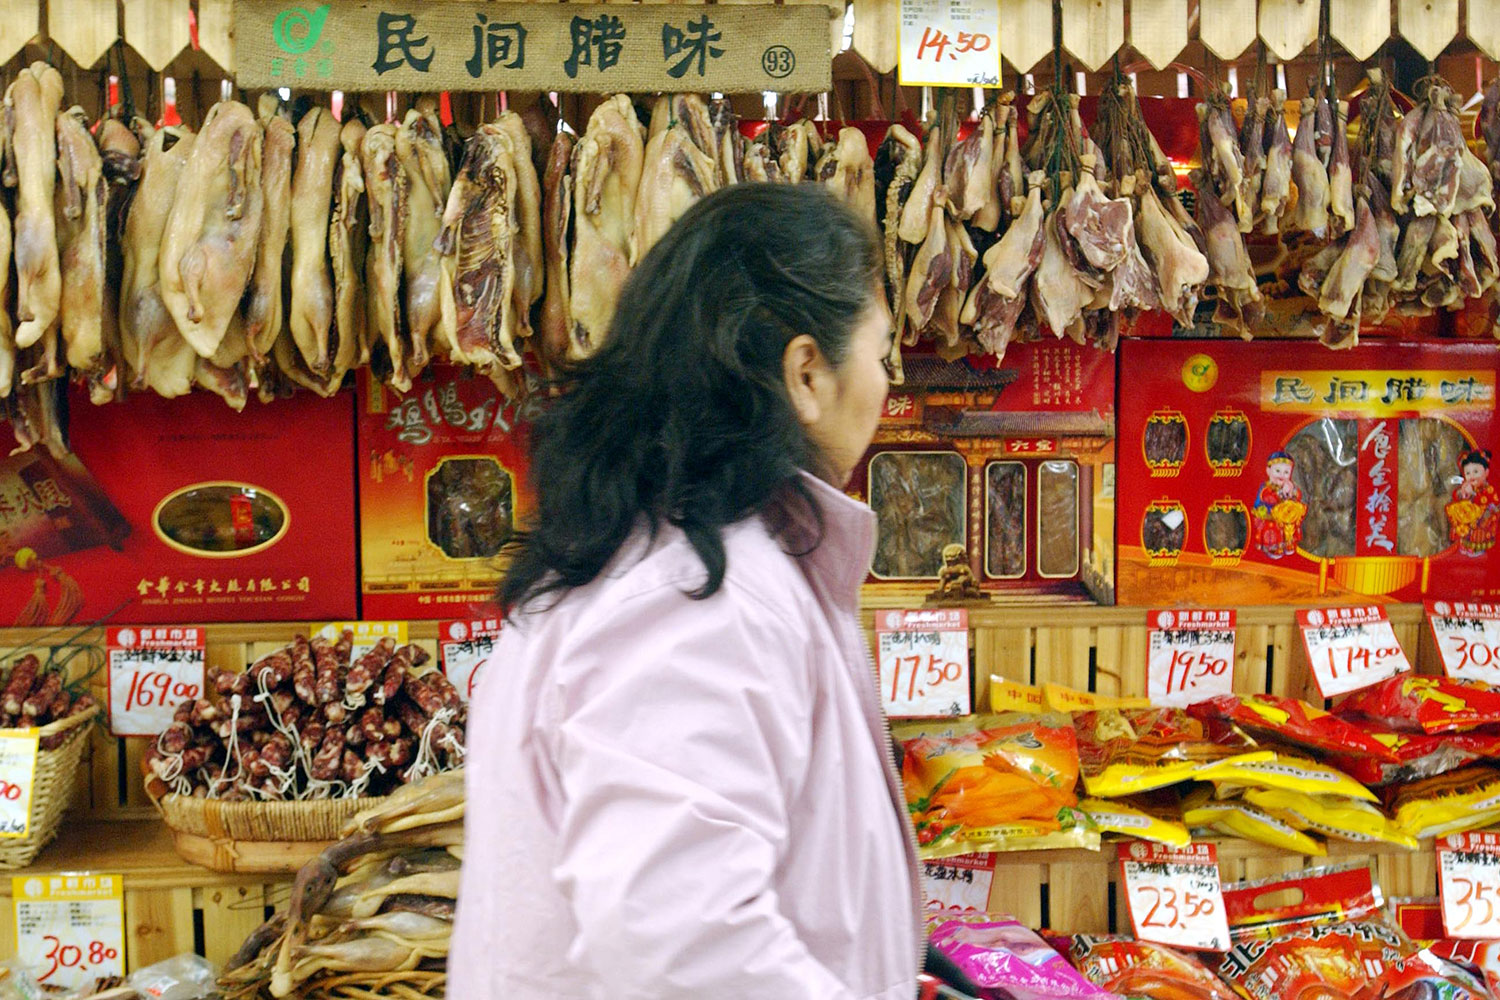 Walking by the camera is an older woman with her hair pulled back wearing a dull pink jacket. She walks perpendicular to the direction of the camera and is looking away, at the various foods on display. Behind her is a dizzying array of red- and yellow-hued dried meats and fishes, sausages and packages.